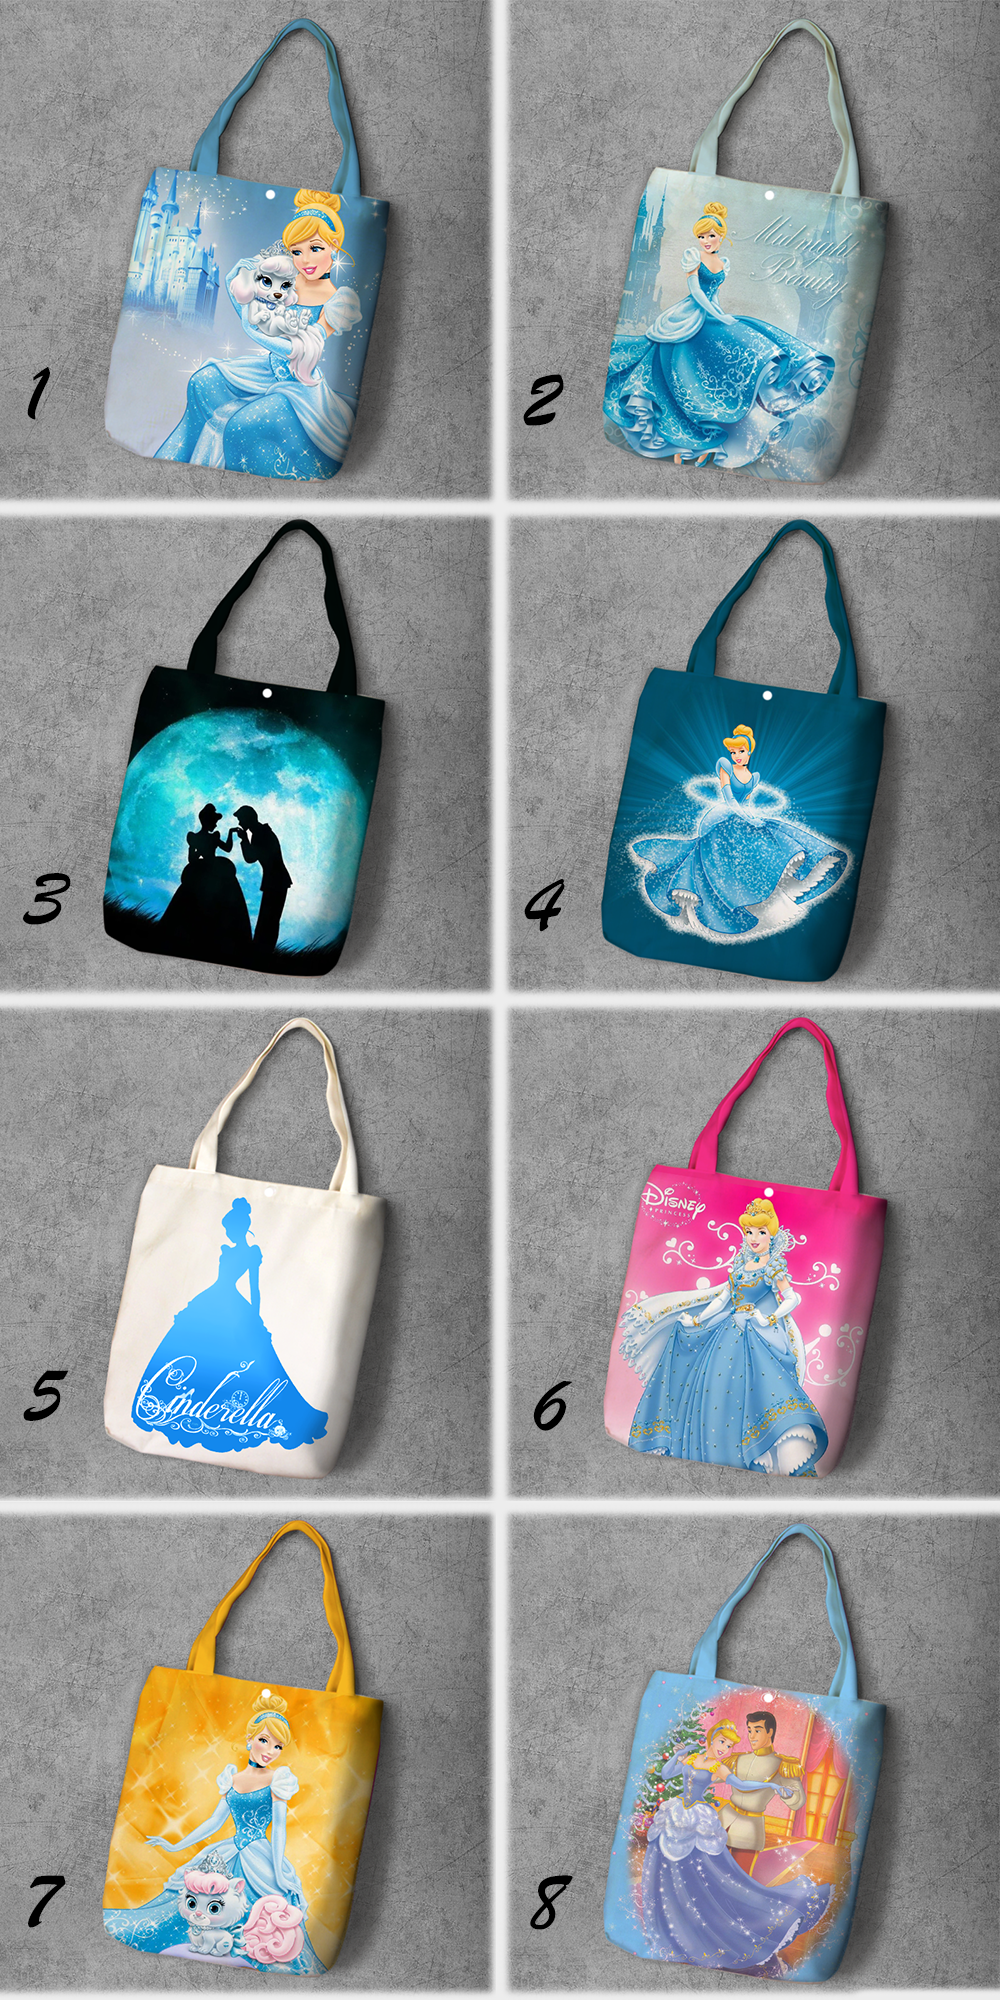 Cinderella Cartoon Student Printed Canvas Recy Shopping Bag Large Capacity Customize Tote Fashion Ladies Casual Shoulder Bags